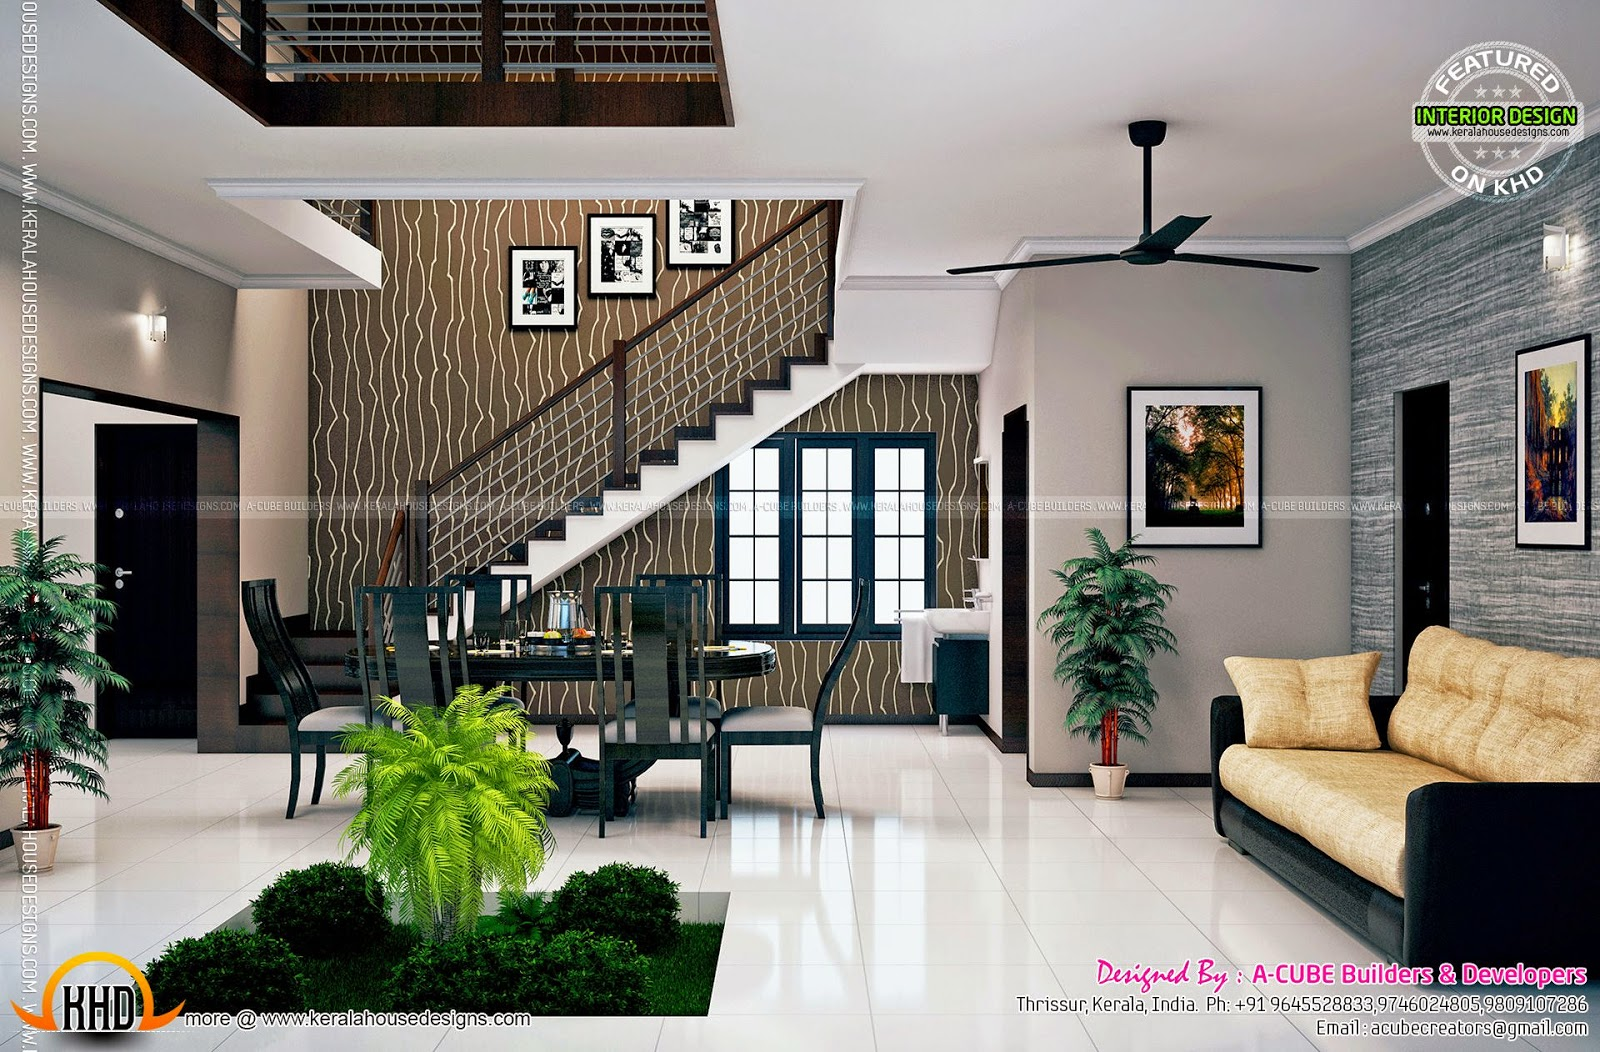 Kerala interior design ideas kerala home design and for House dining hall design